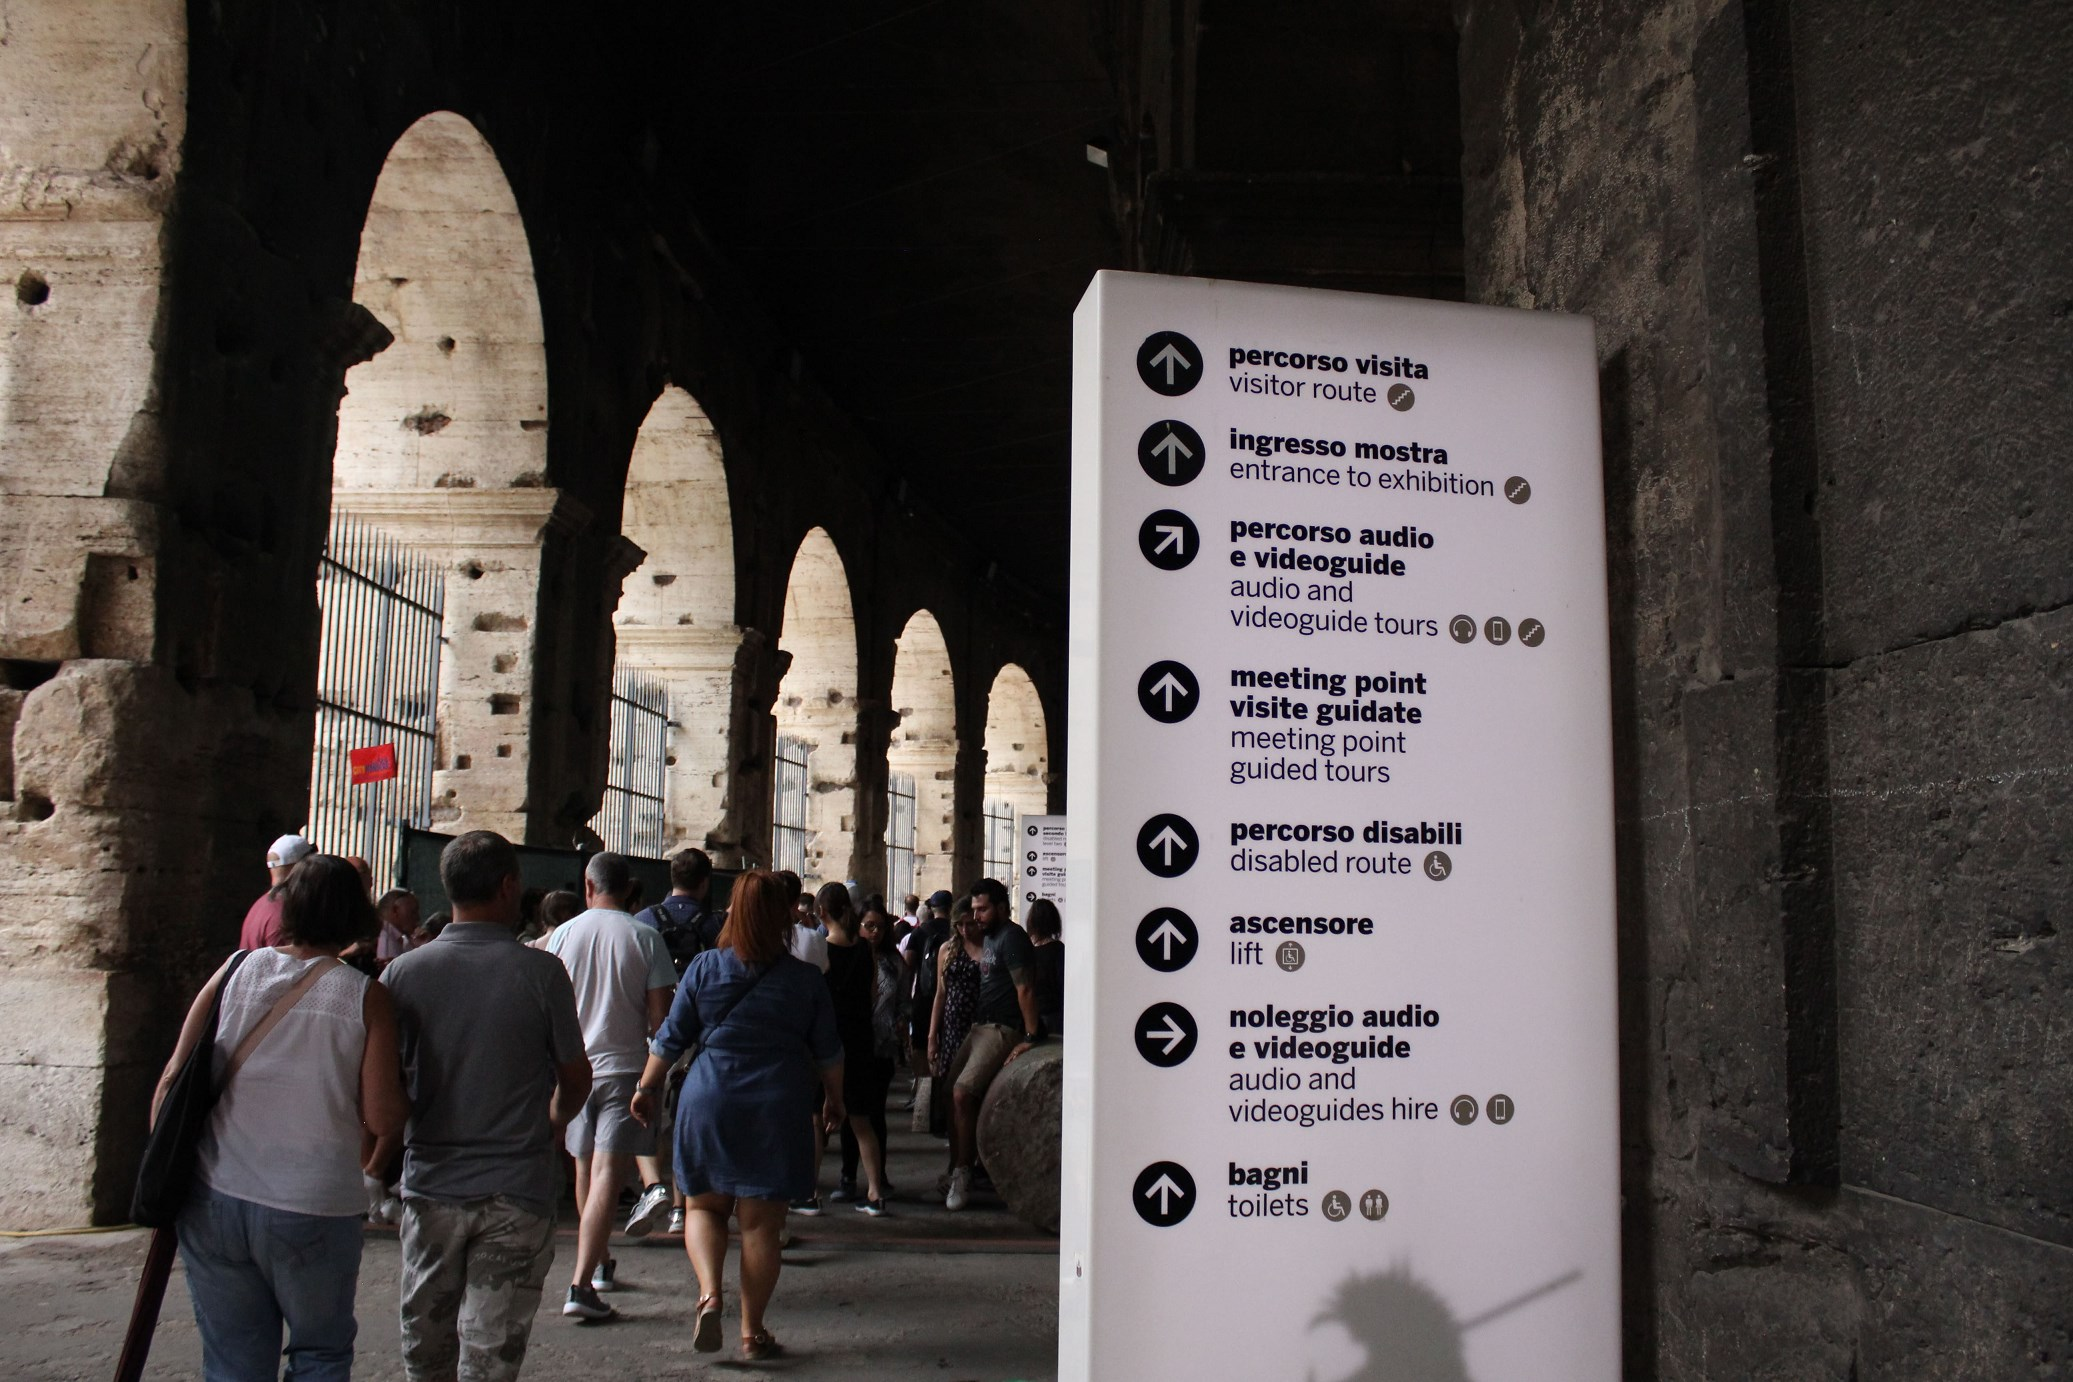 colosseum tickets skip the line Infos accessibilty restrooms